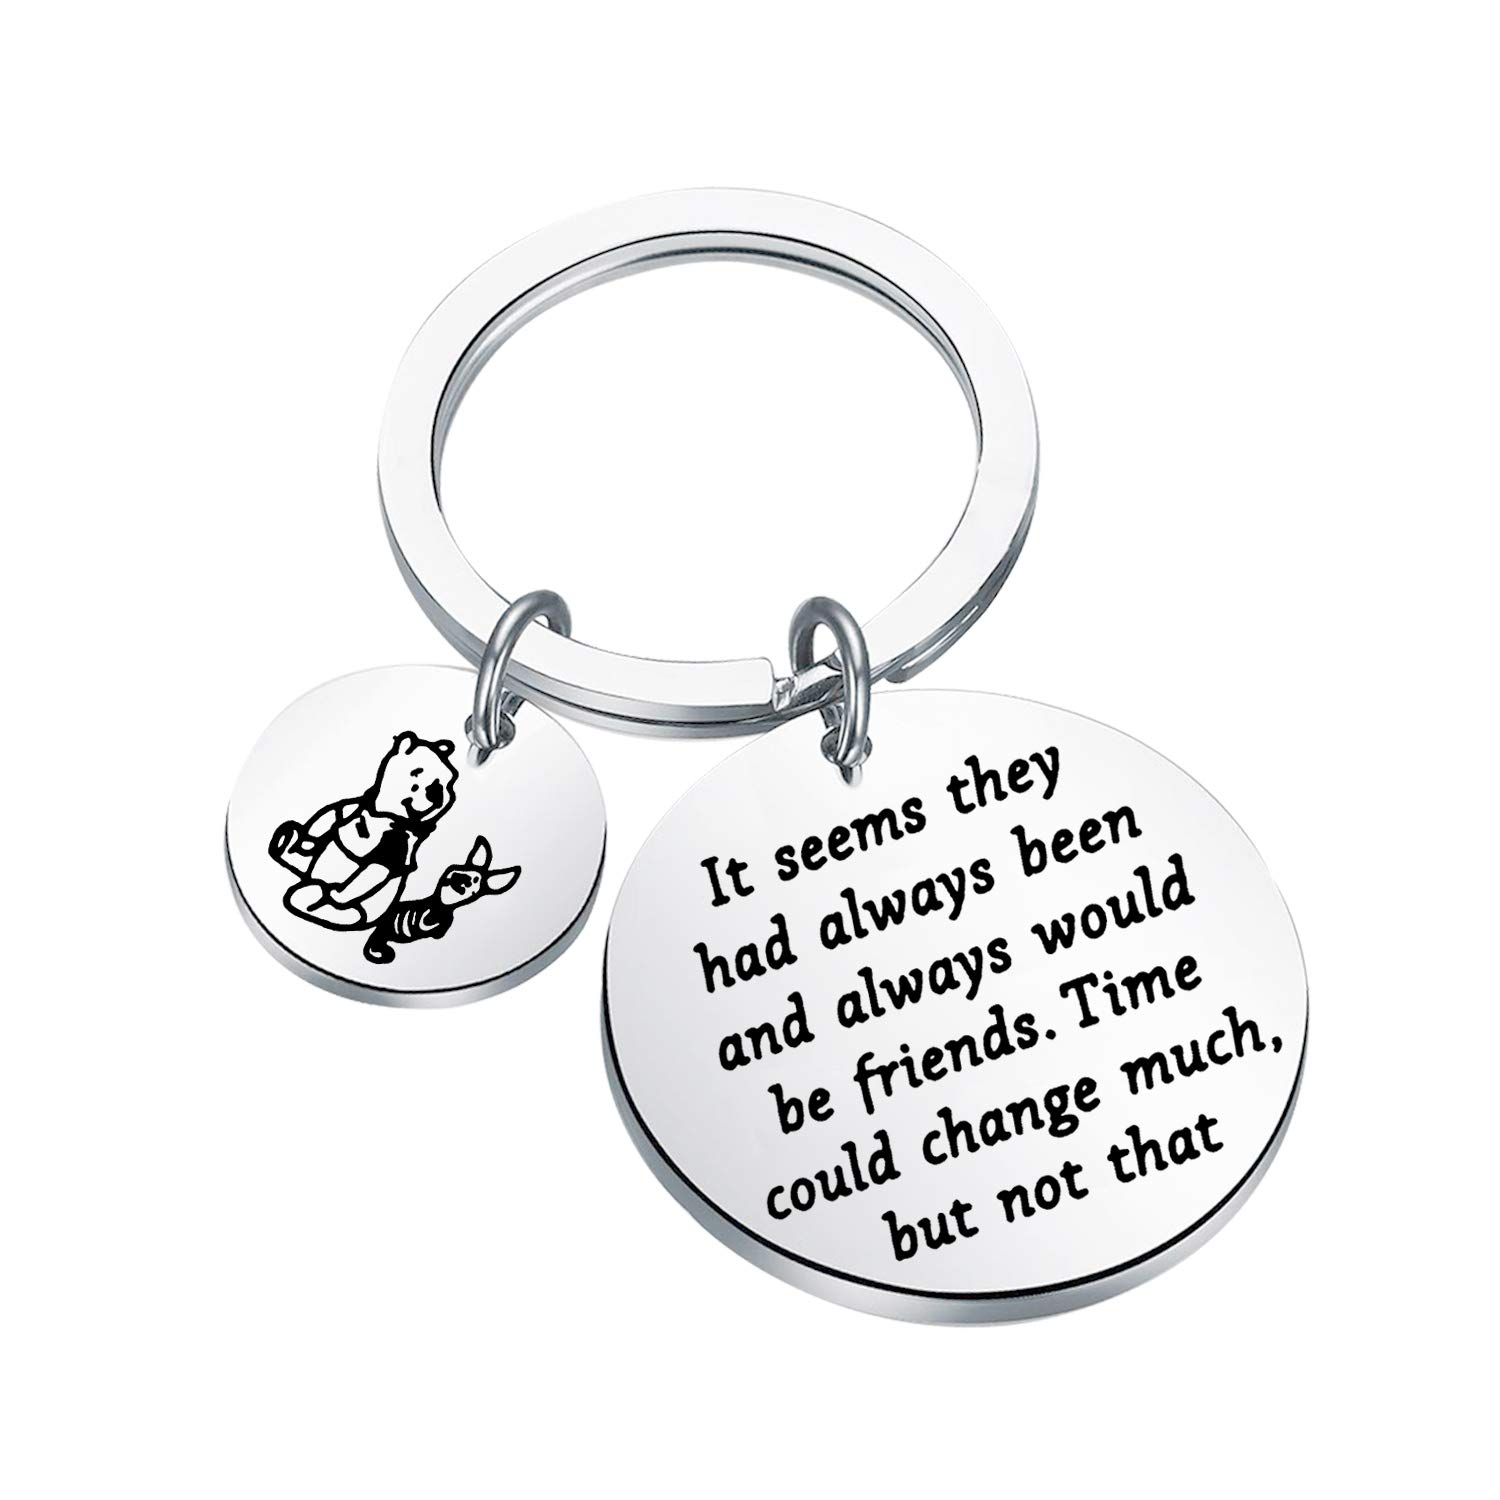 Lywjyb Birdgot Winnie The Pooh Gift Piglet & Winnie The Pooh Gift Friendship Keychain BFF Gift It Seems They Had Always Been and Always Would Be Friends Keychain